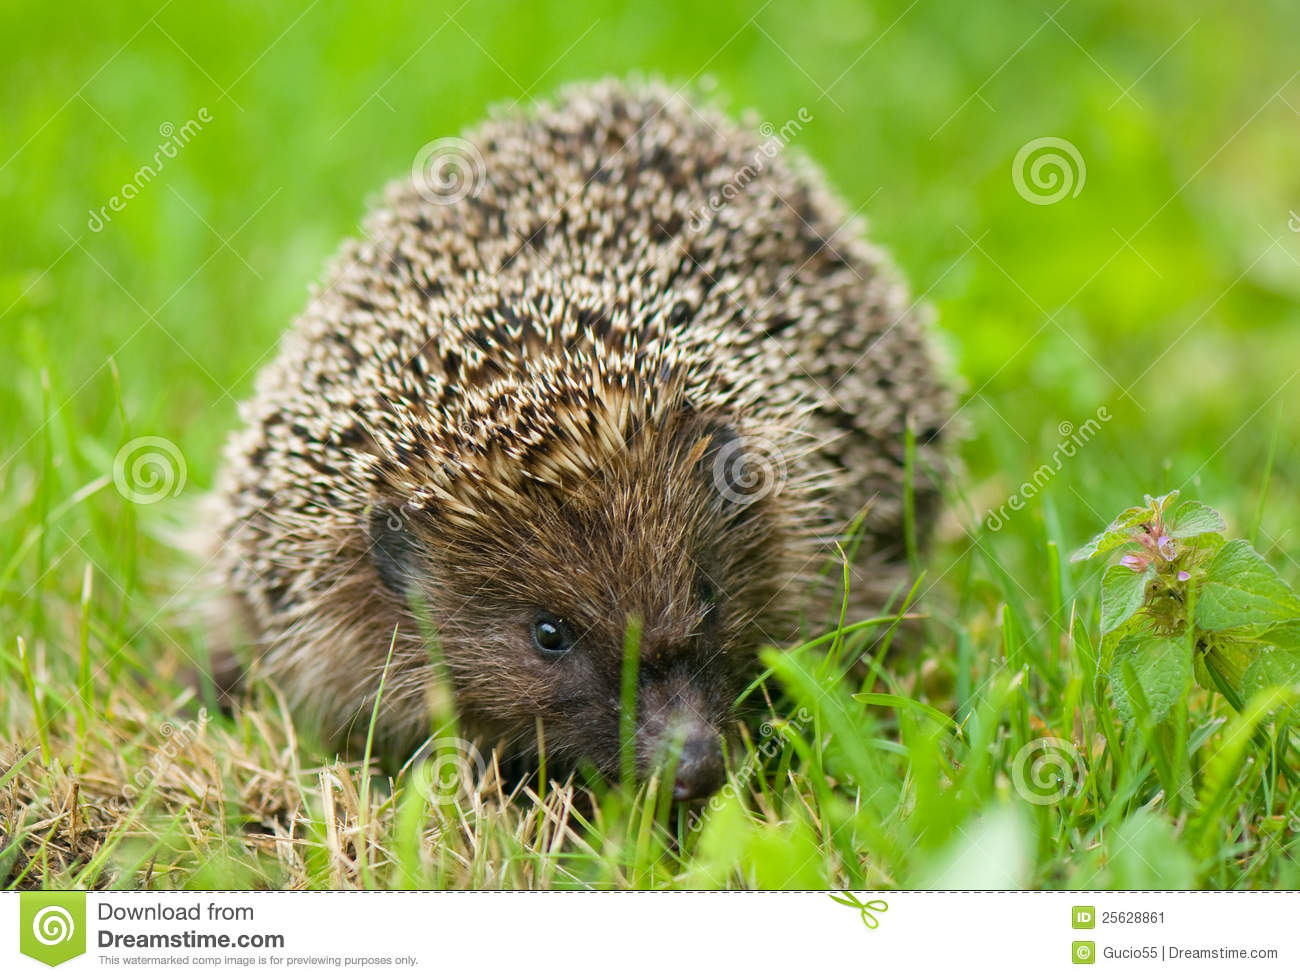 Hedgehog - Erinaceus europaeus - sympathetic, spiny hedgehog.